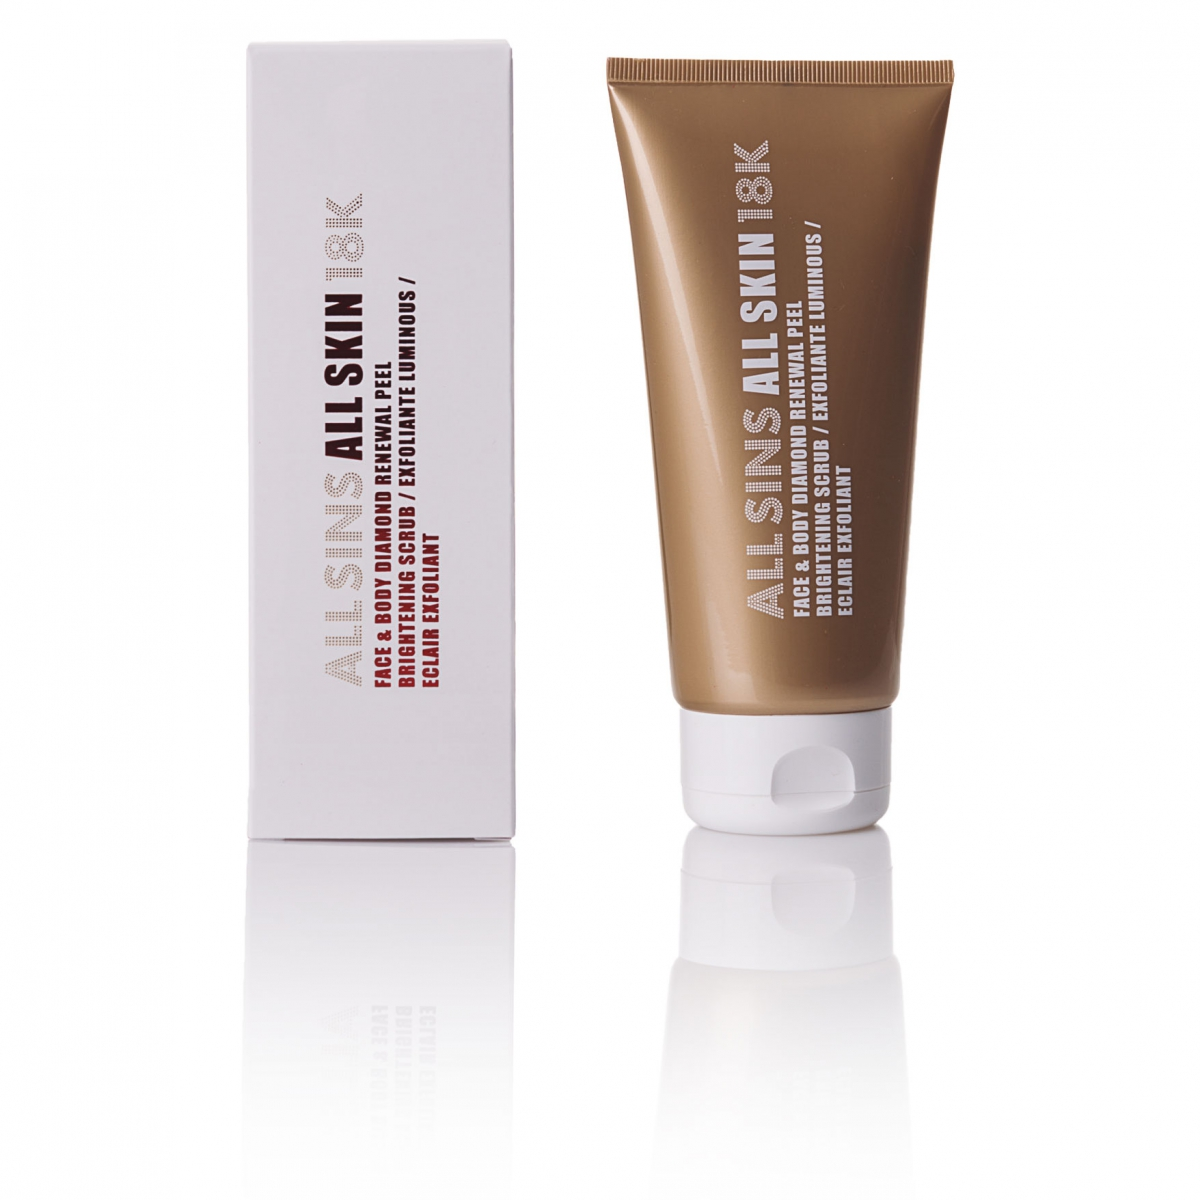 FACE & BODY DIAMOND RENEWAL PEEL BRIGHTENING SCRUB